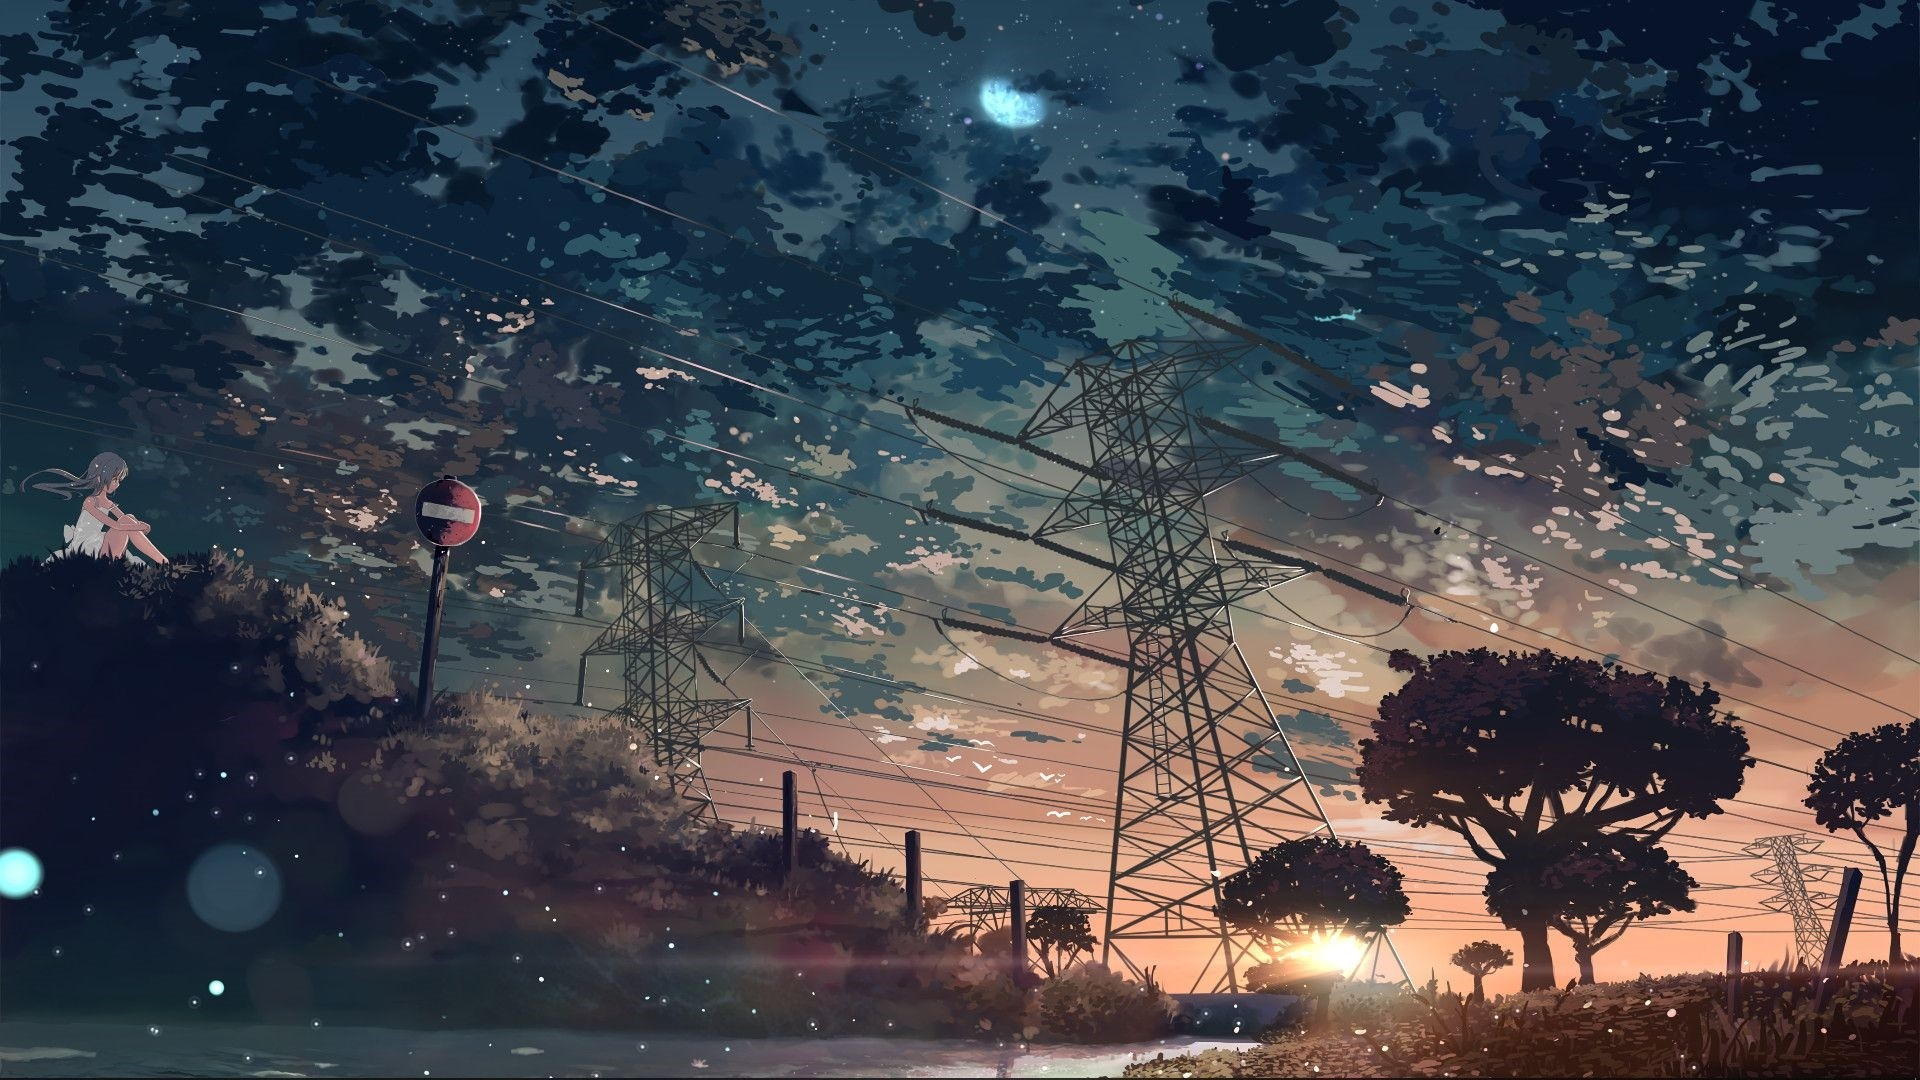 Aesthetic Anime Wallpaper Picture hd